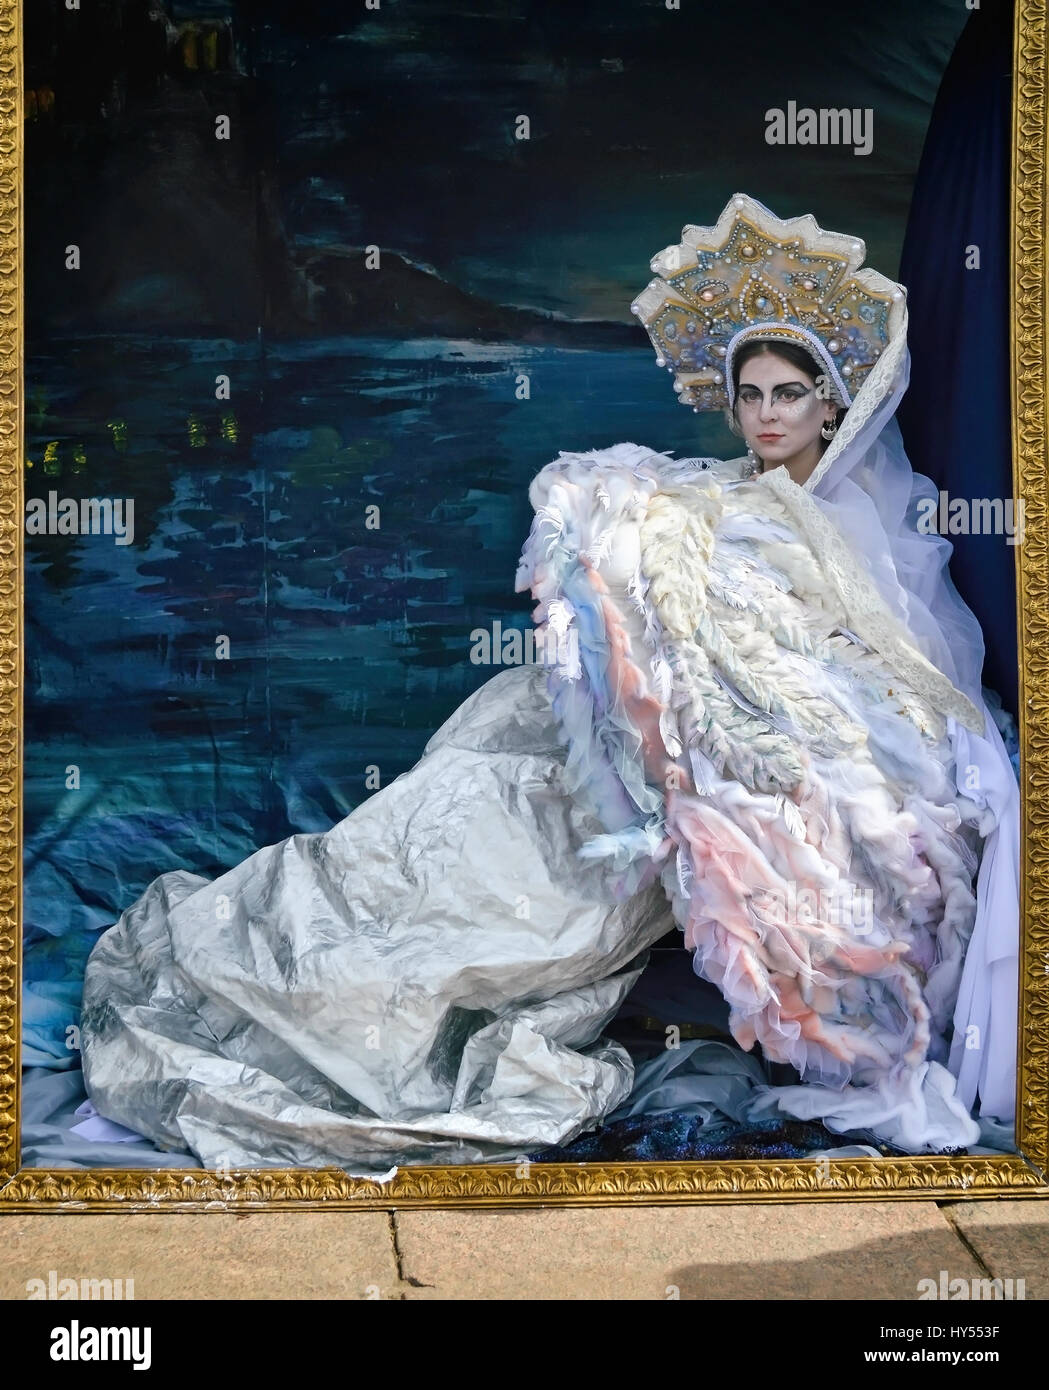 Actress in the image of the Princess - Swan depicted in the picture based on the artistic work of Vrubel on a holiday - Stock Image